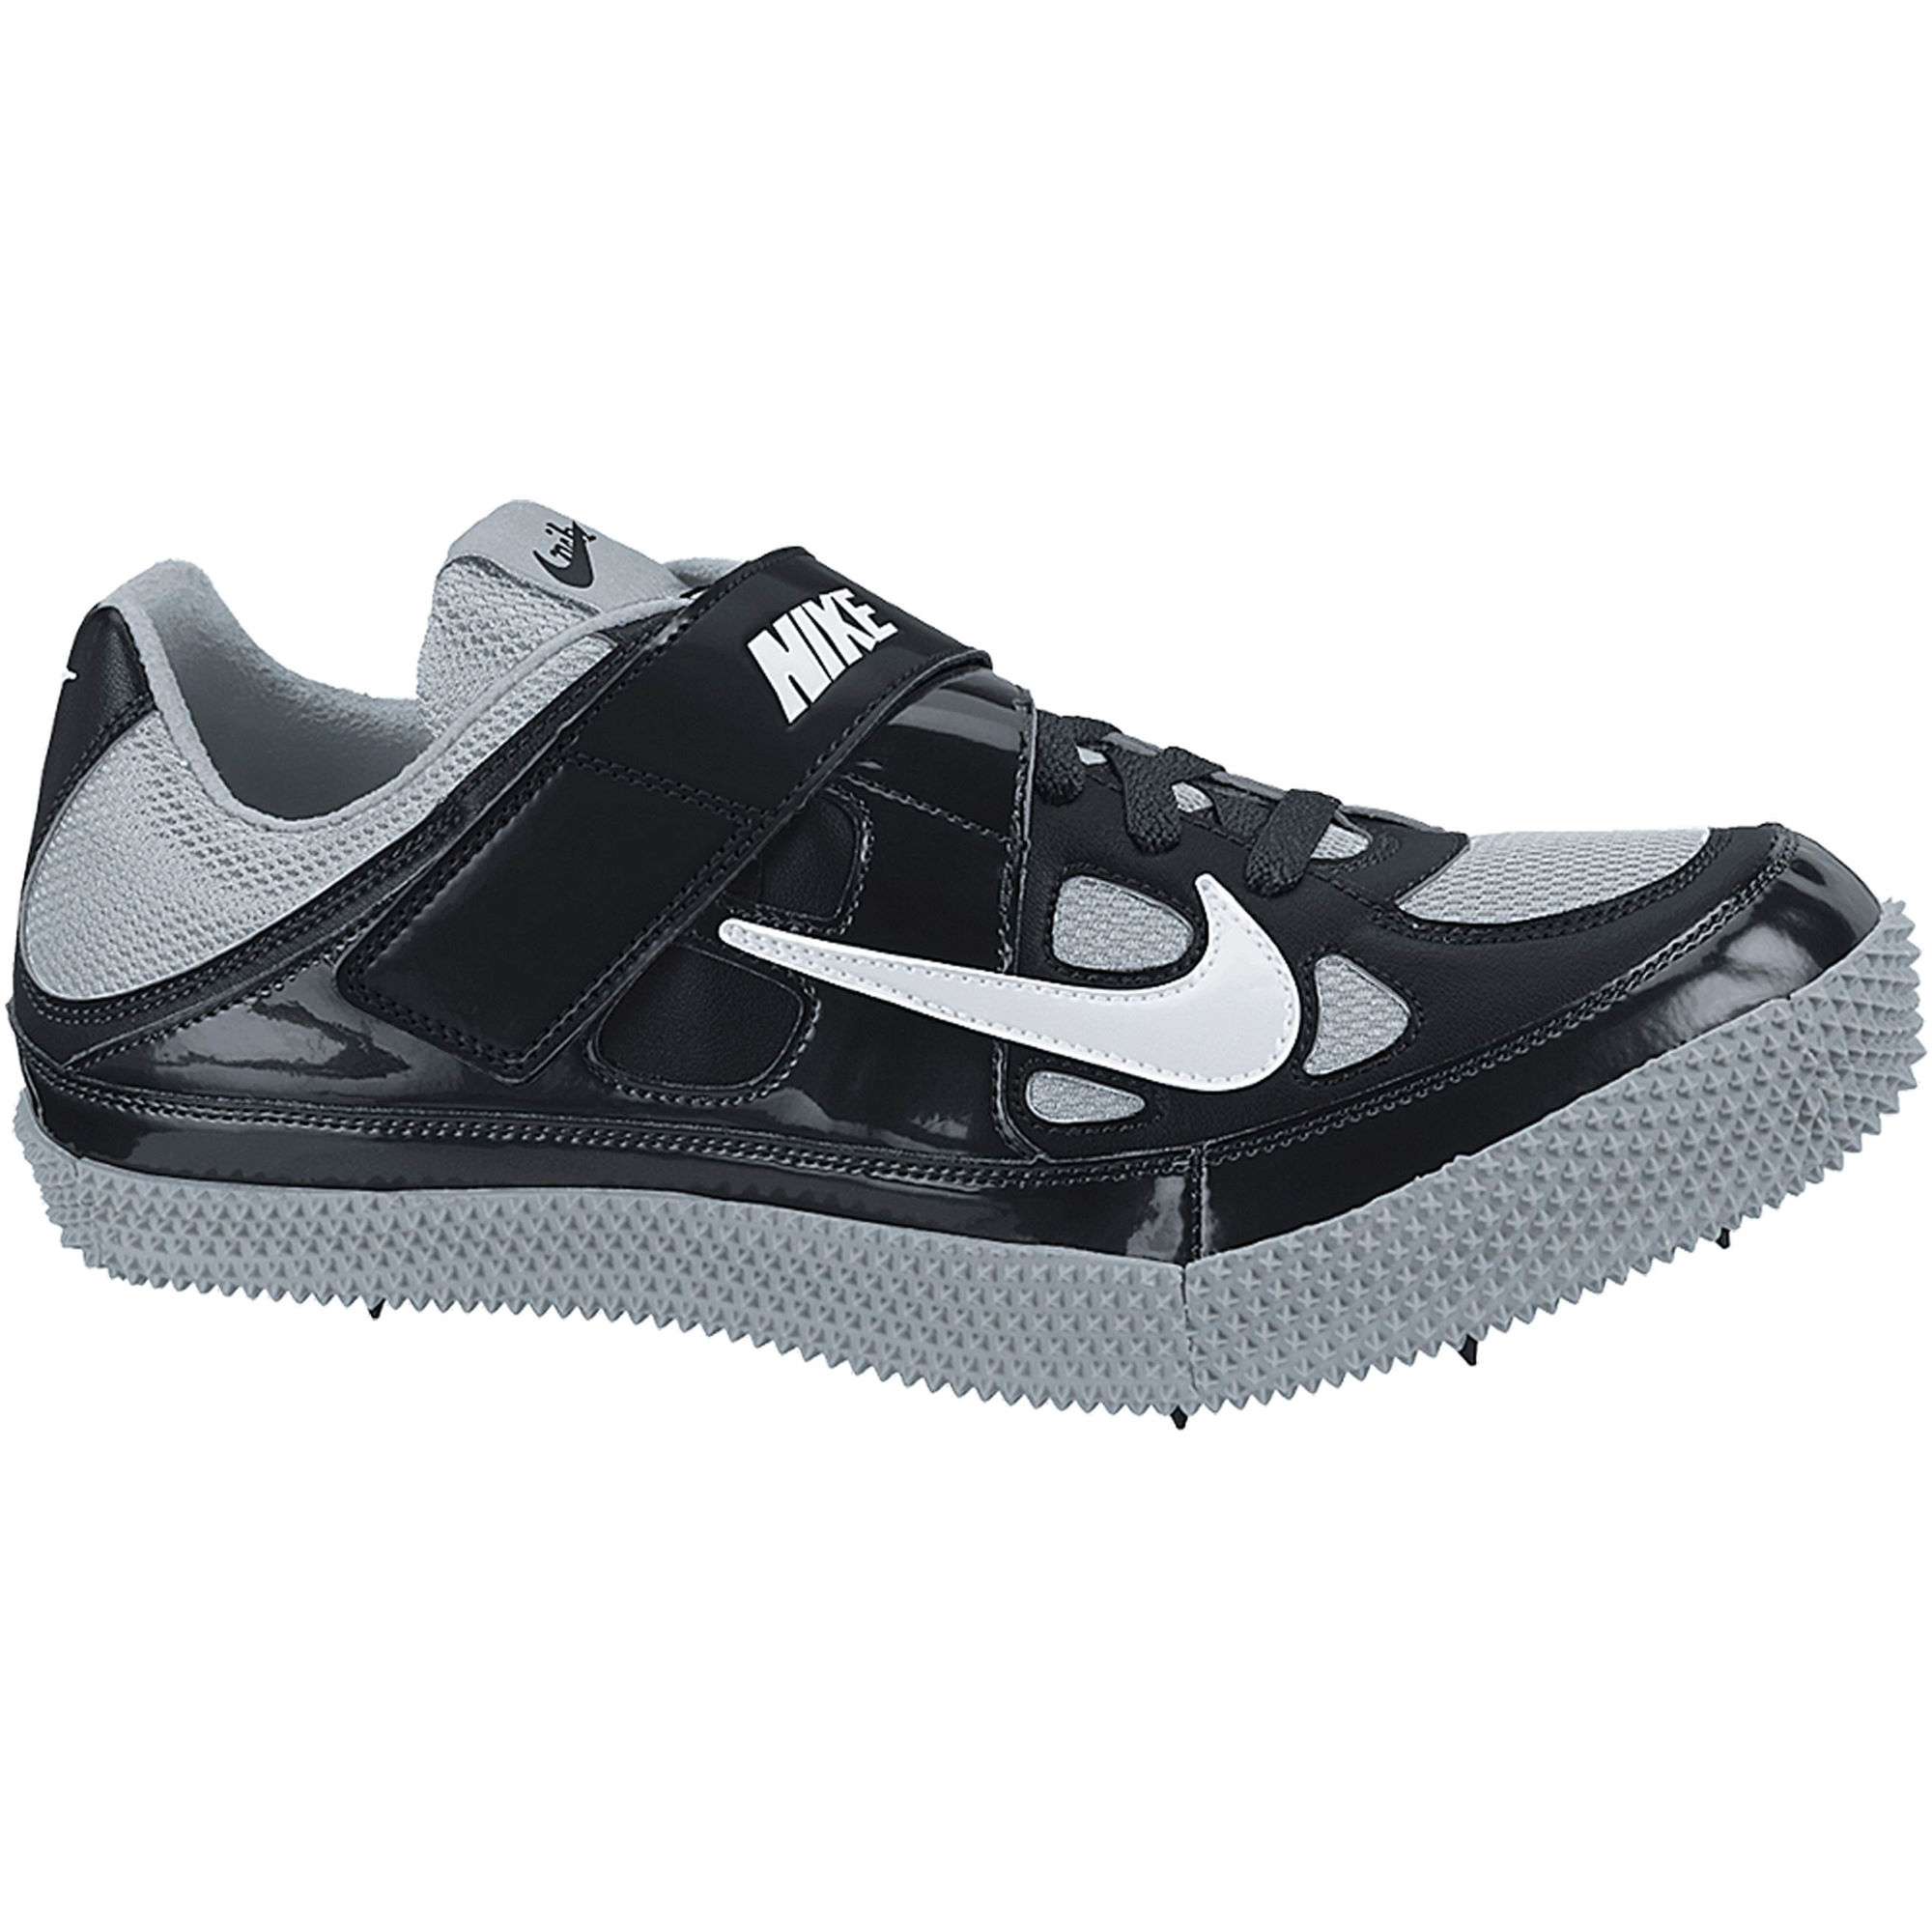 Nike Zoom Hj Iii Shoes